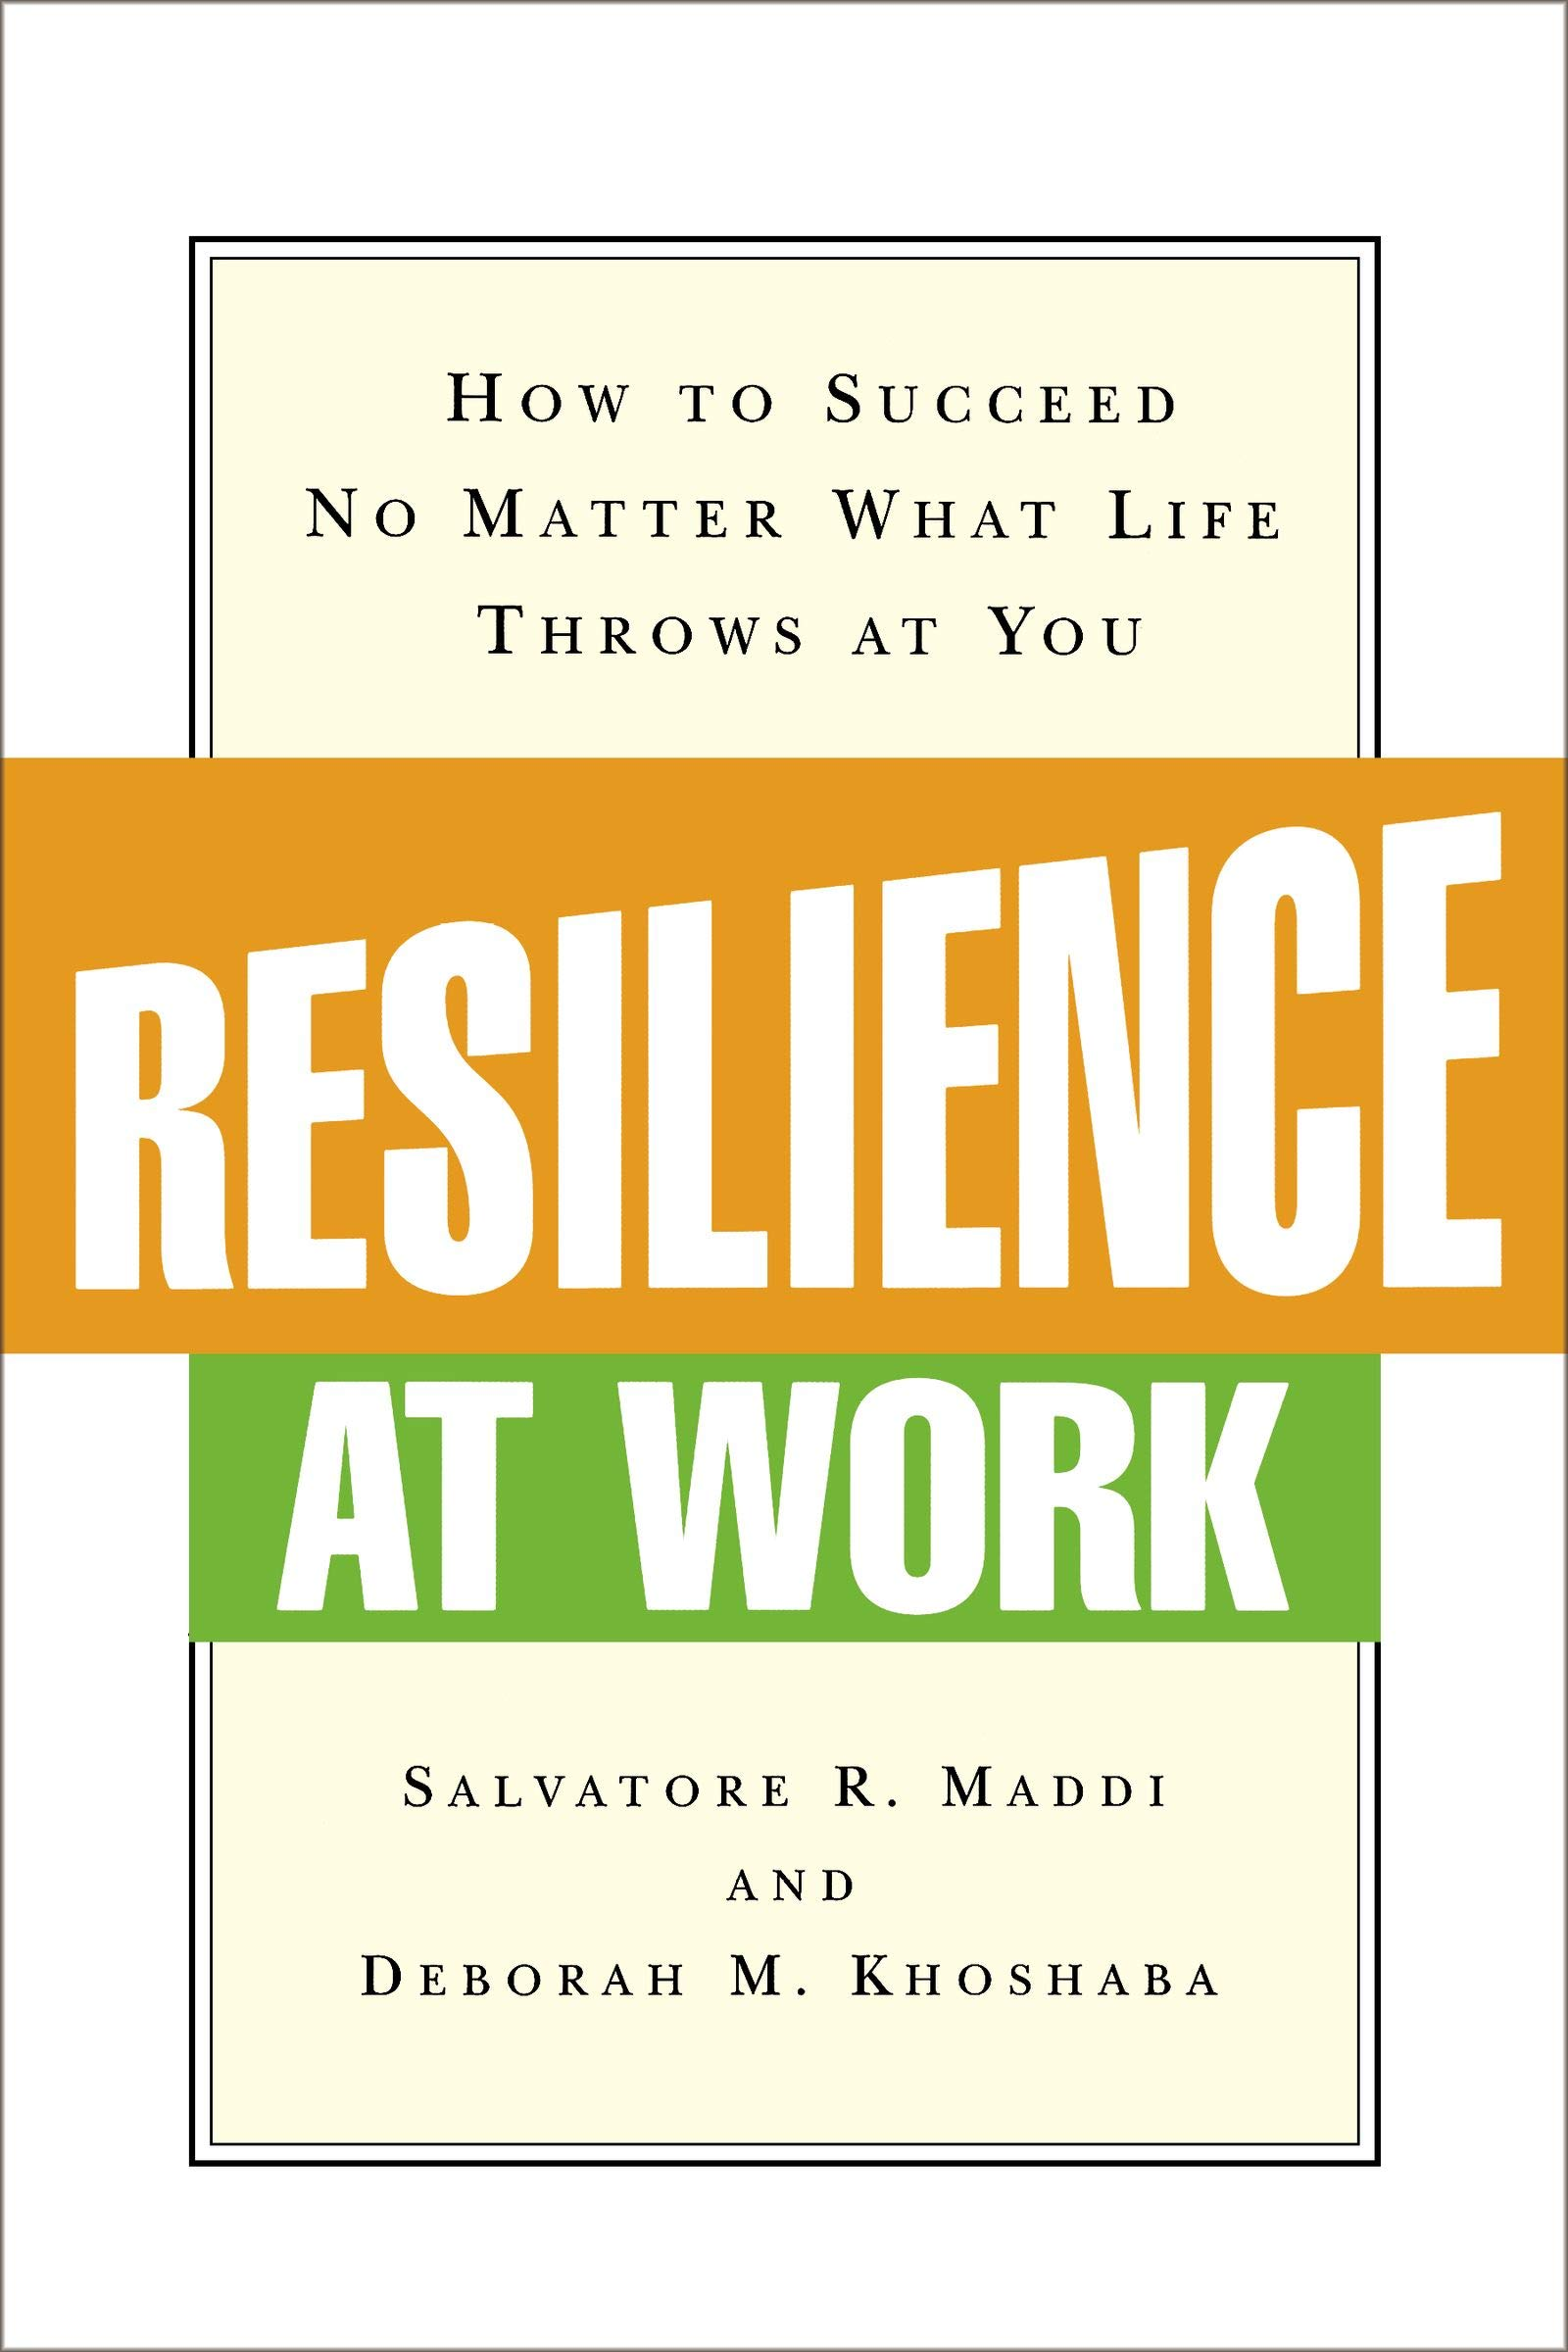 The Downside Of Resilience >> Resilience At Work How To Succeed No Matter What Life Throws At You